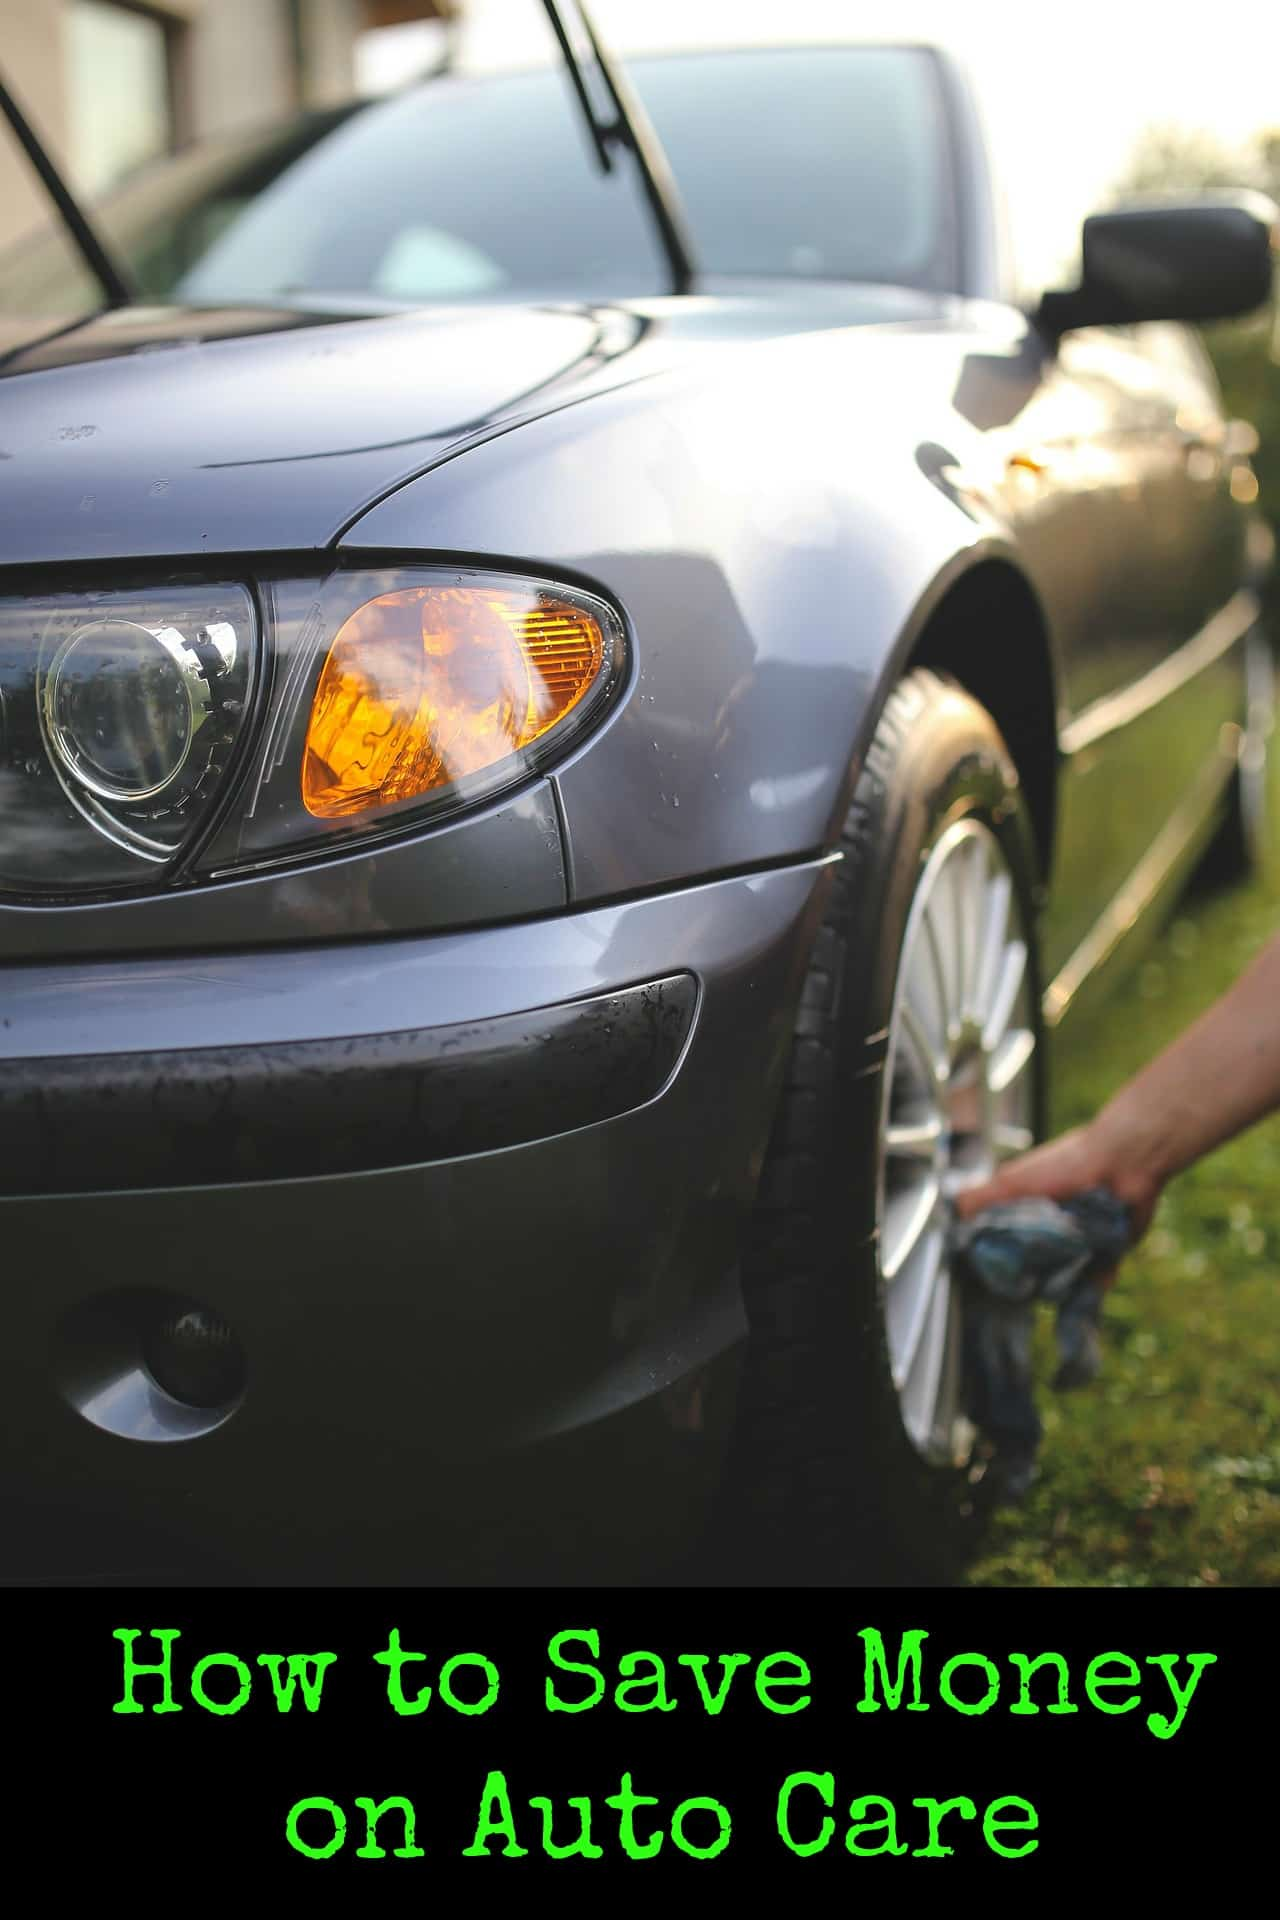 How to Save Money on Auto Care